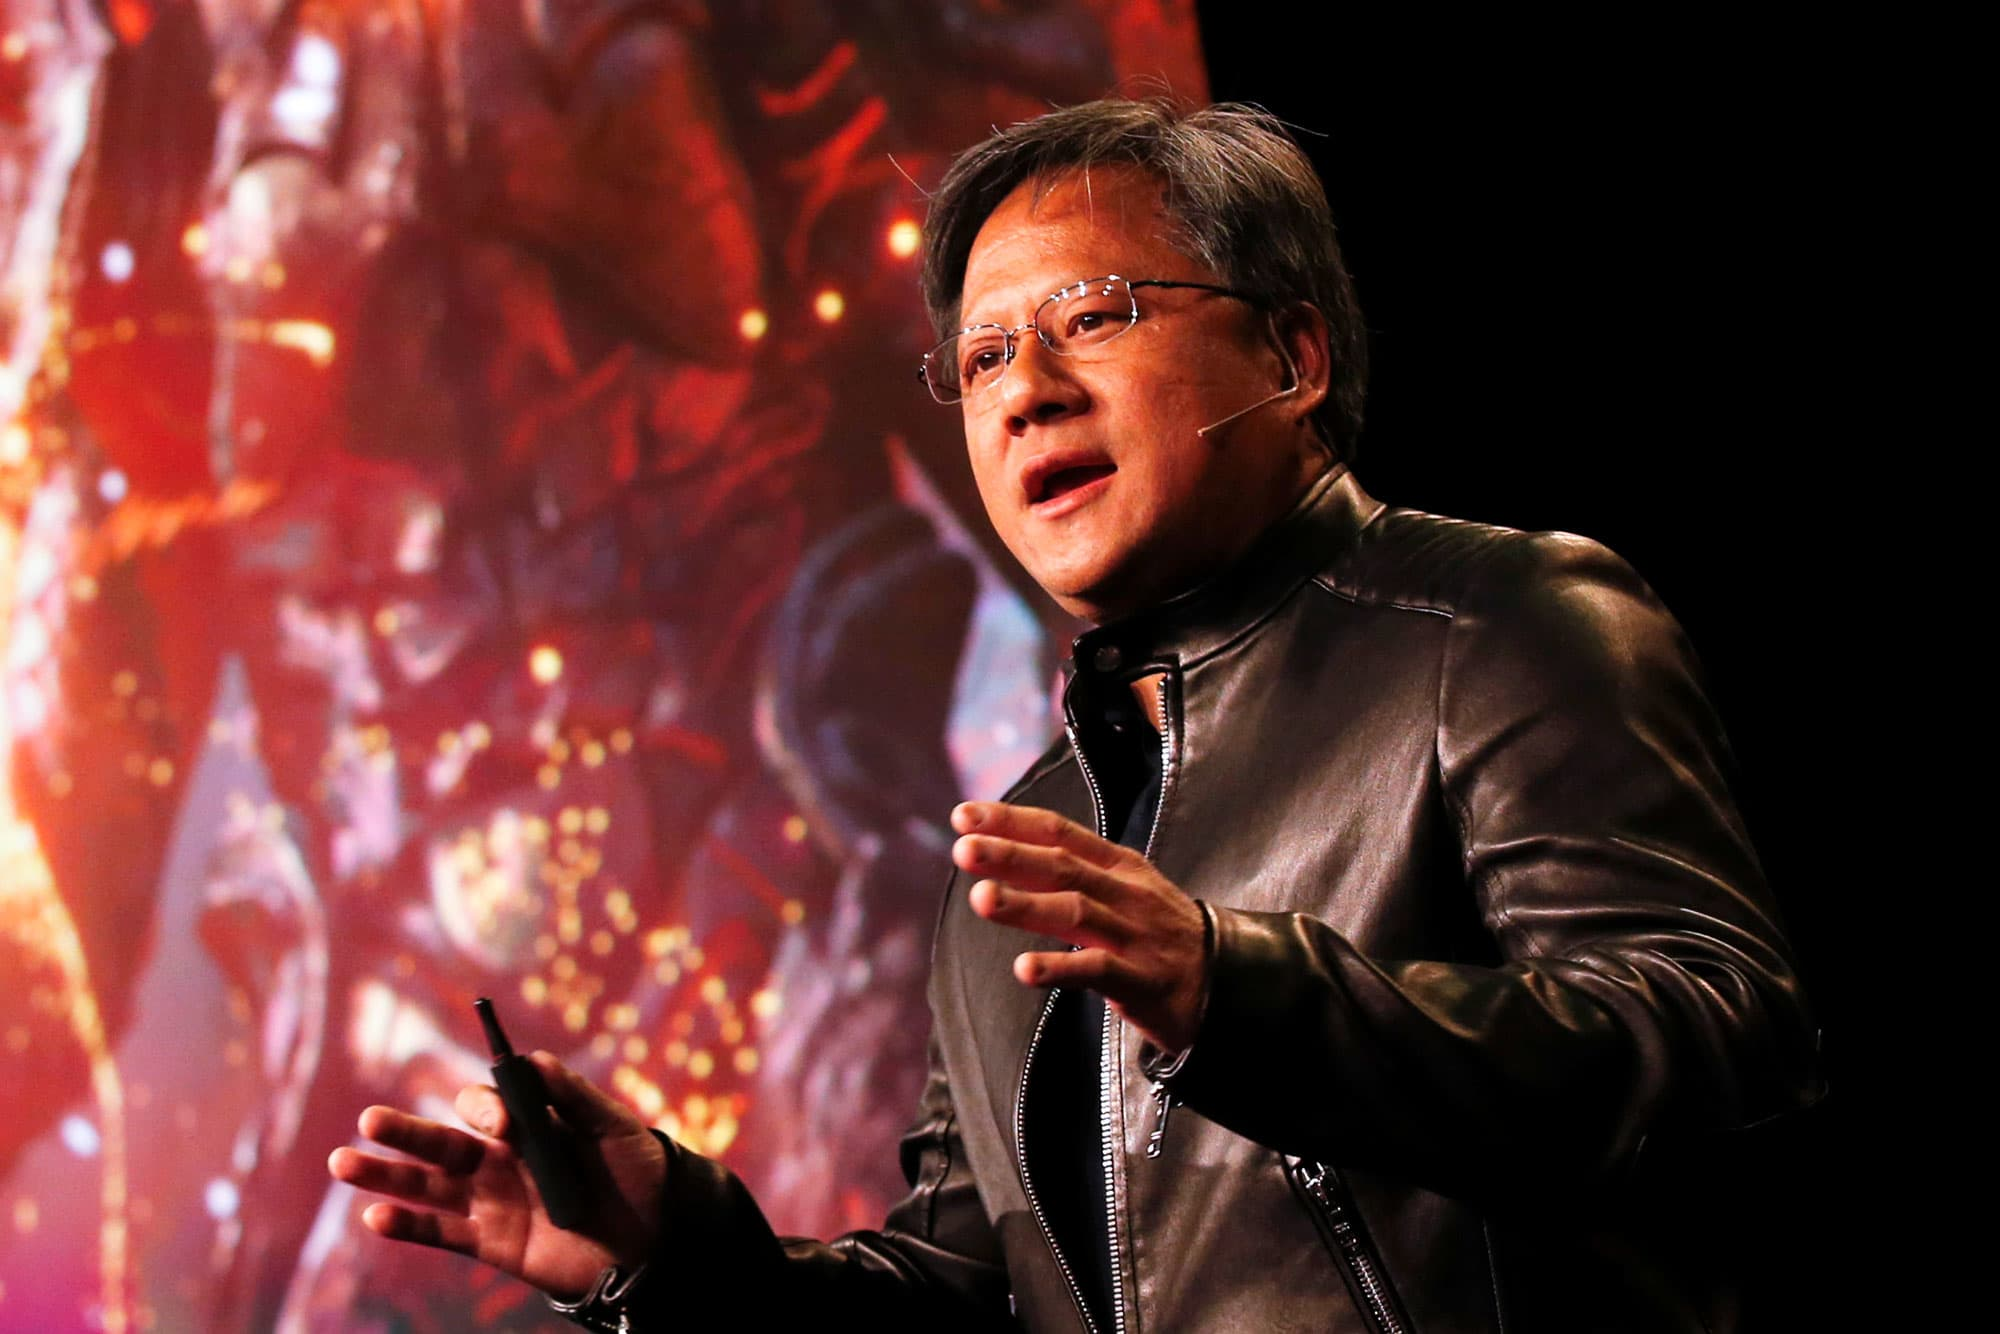 Nvidia CEO doesn't expect China to block $7 billion takeover of Mellanox, despite trade tensions